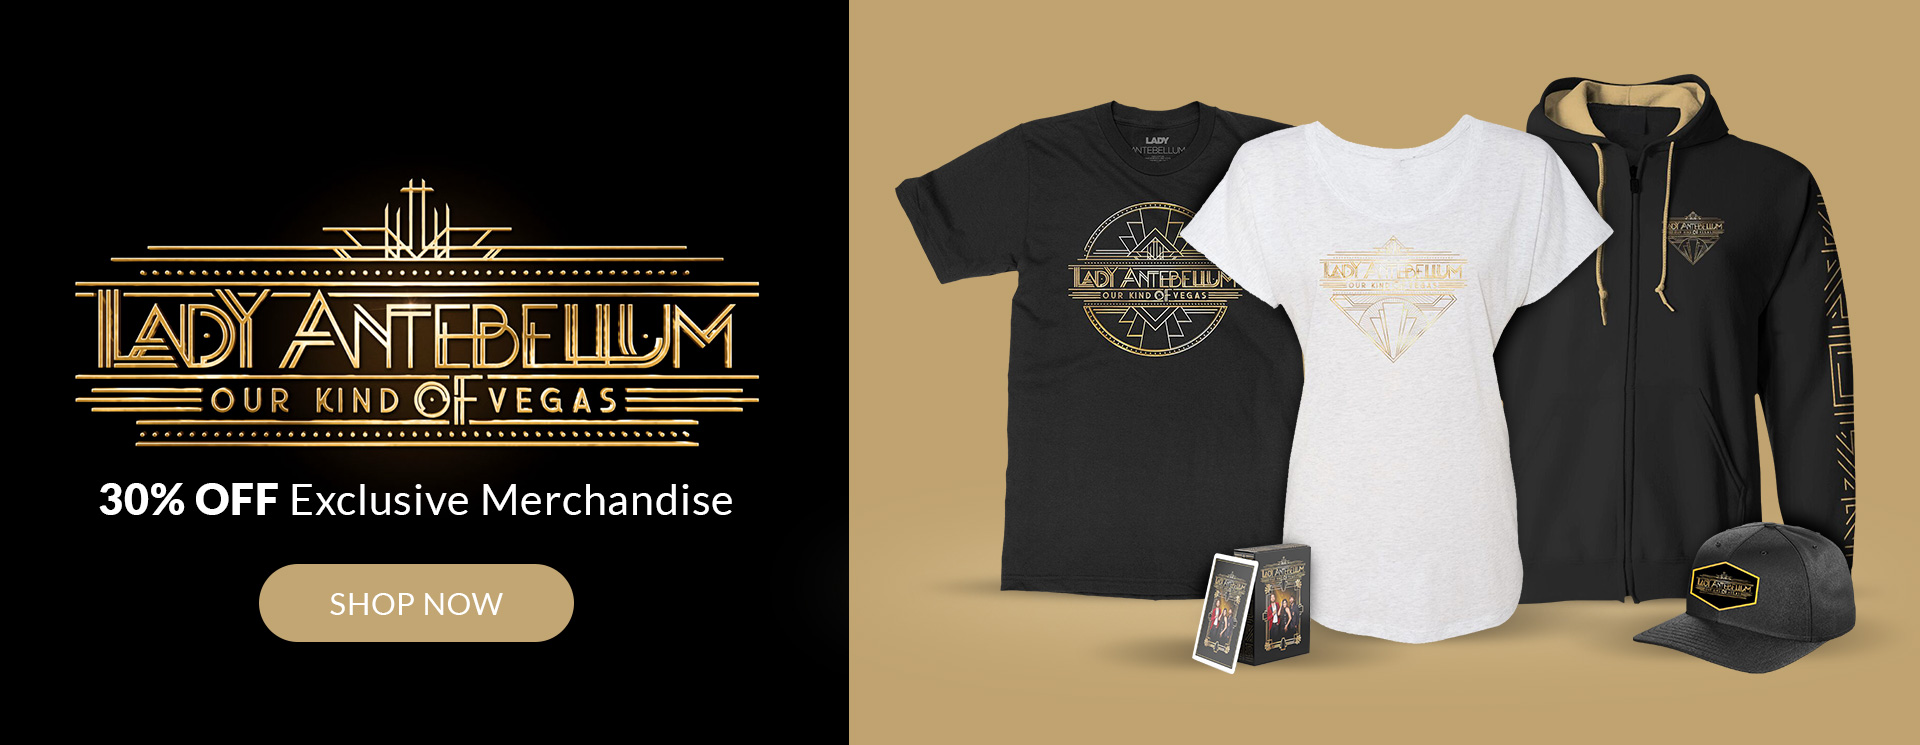 Lady Antebellum 30% Off Exclusive Vegas Merchandise Shop Now